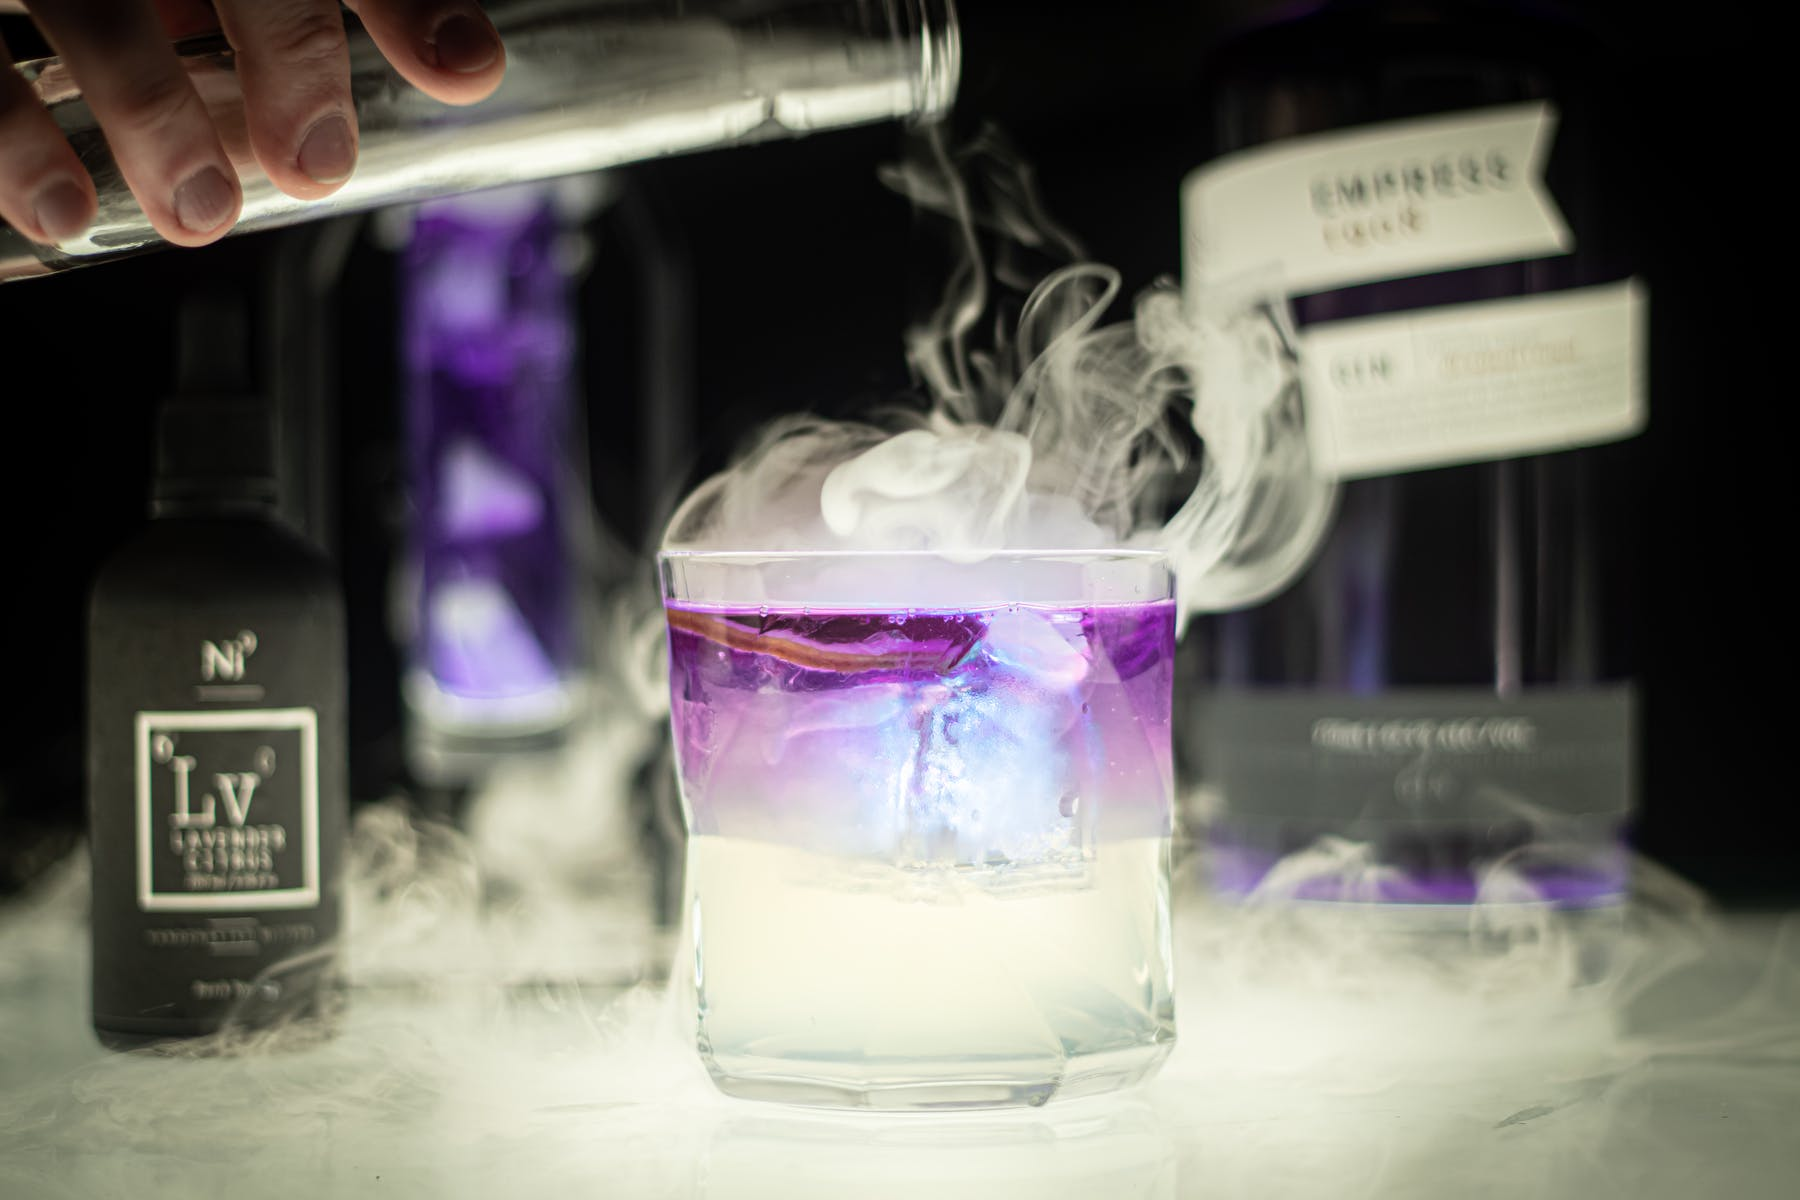 smoking, bubbling cocktails